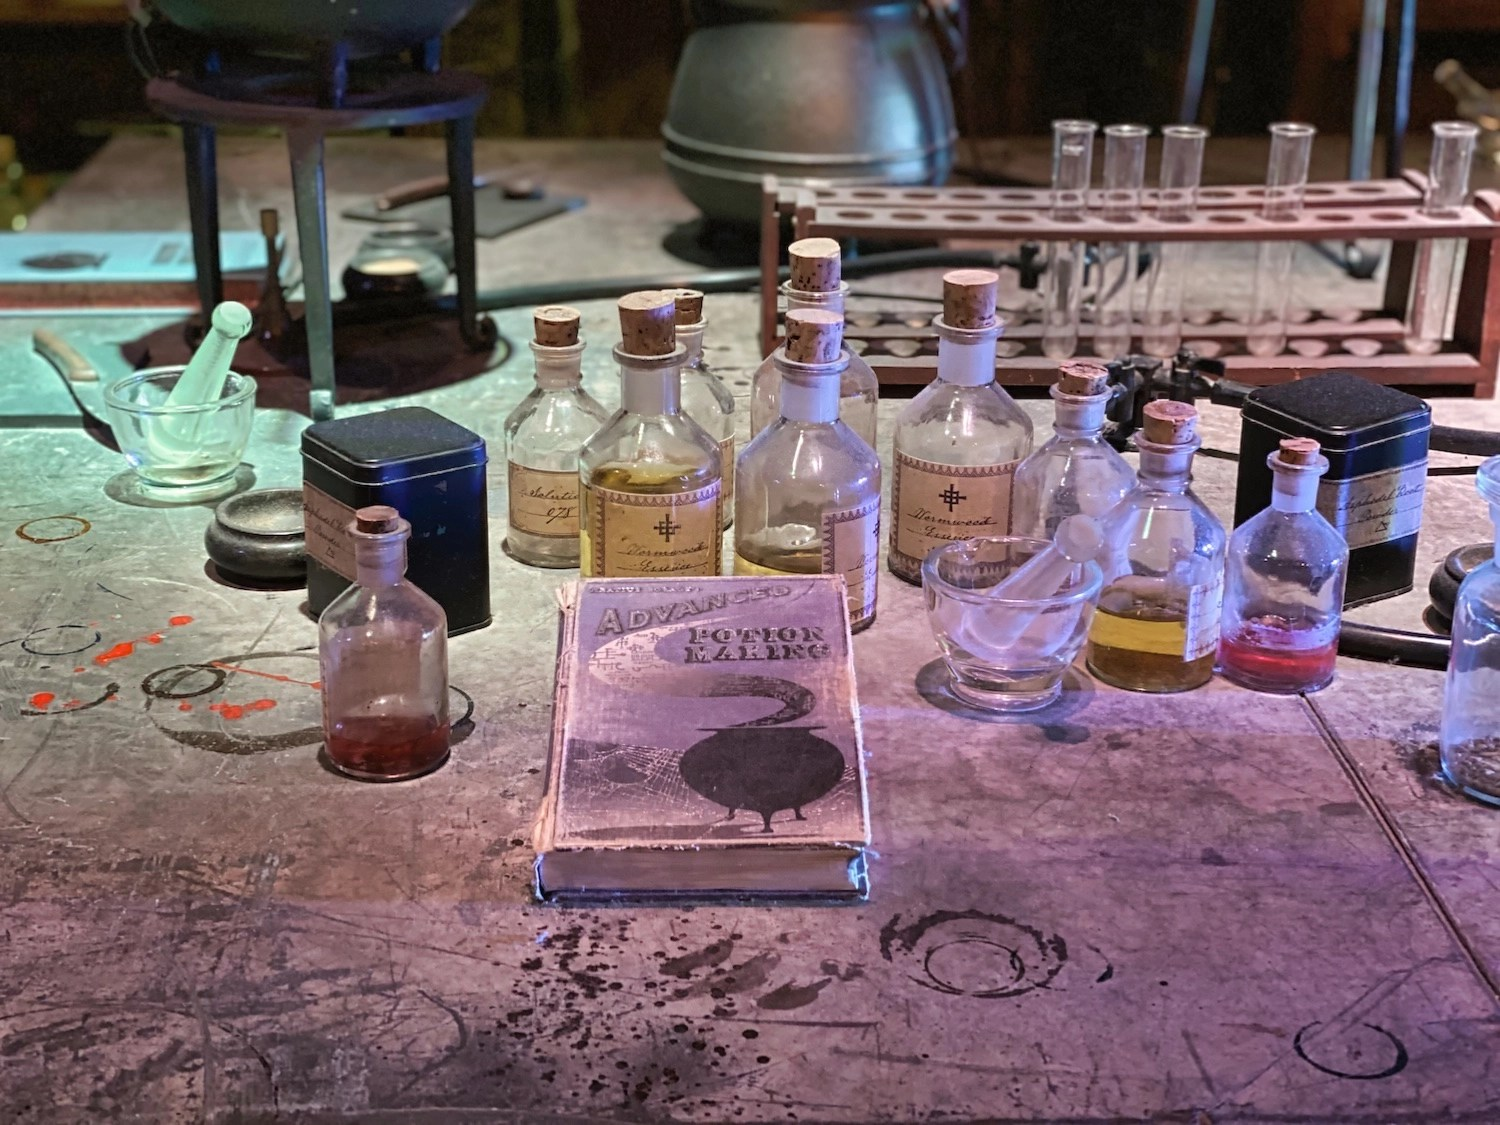 Harry Potter Studio Tour - Potions Classroom